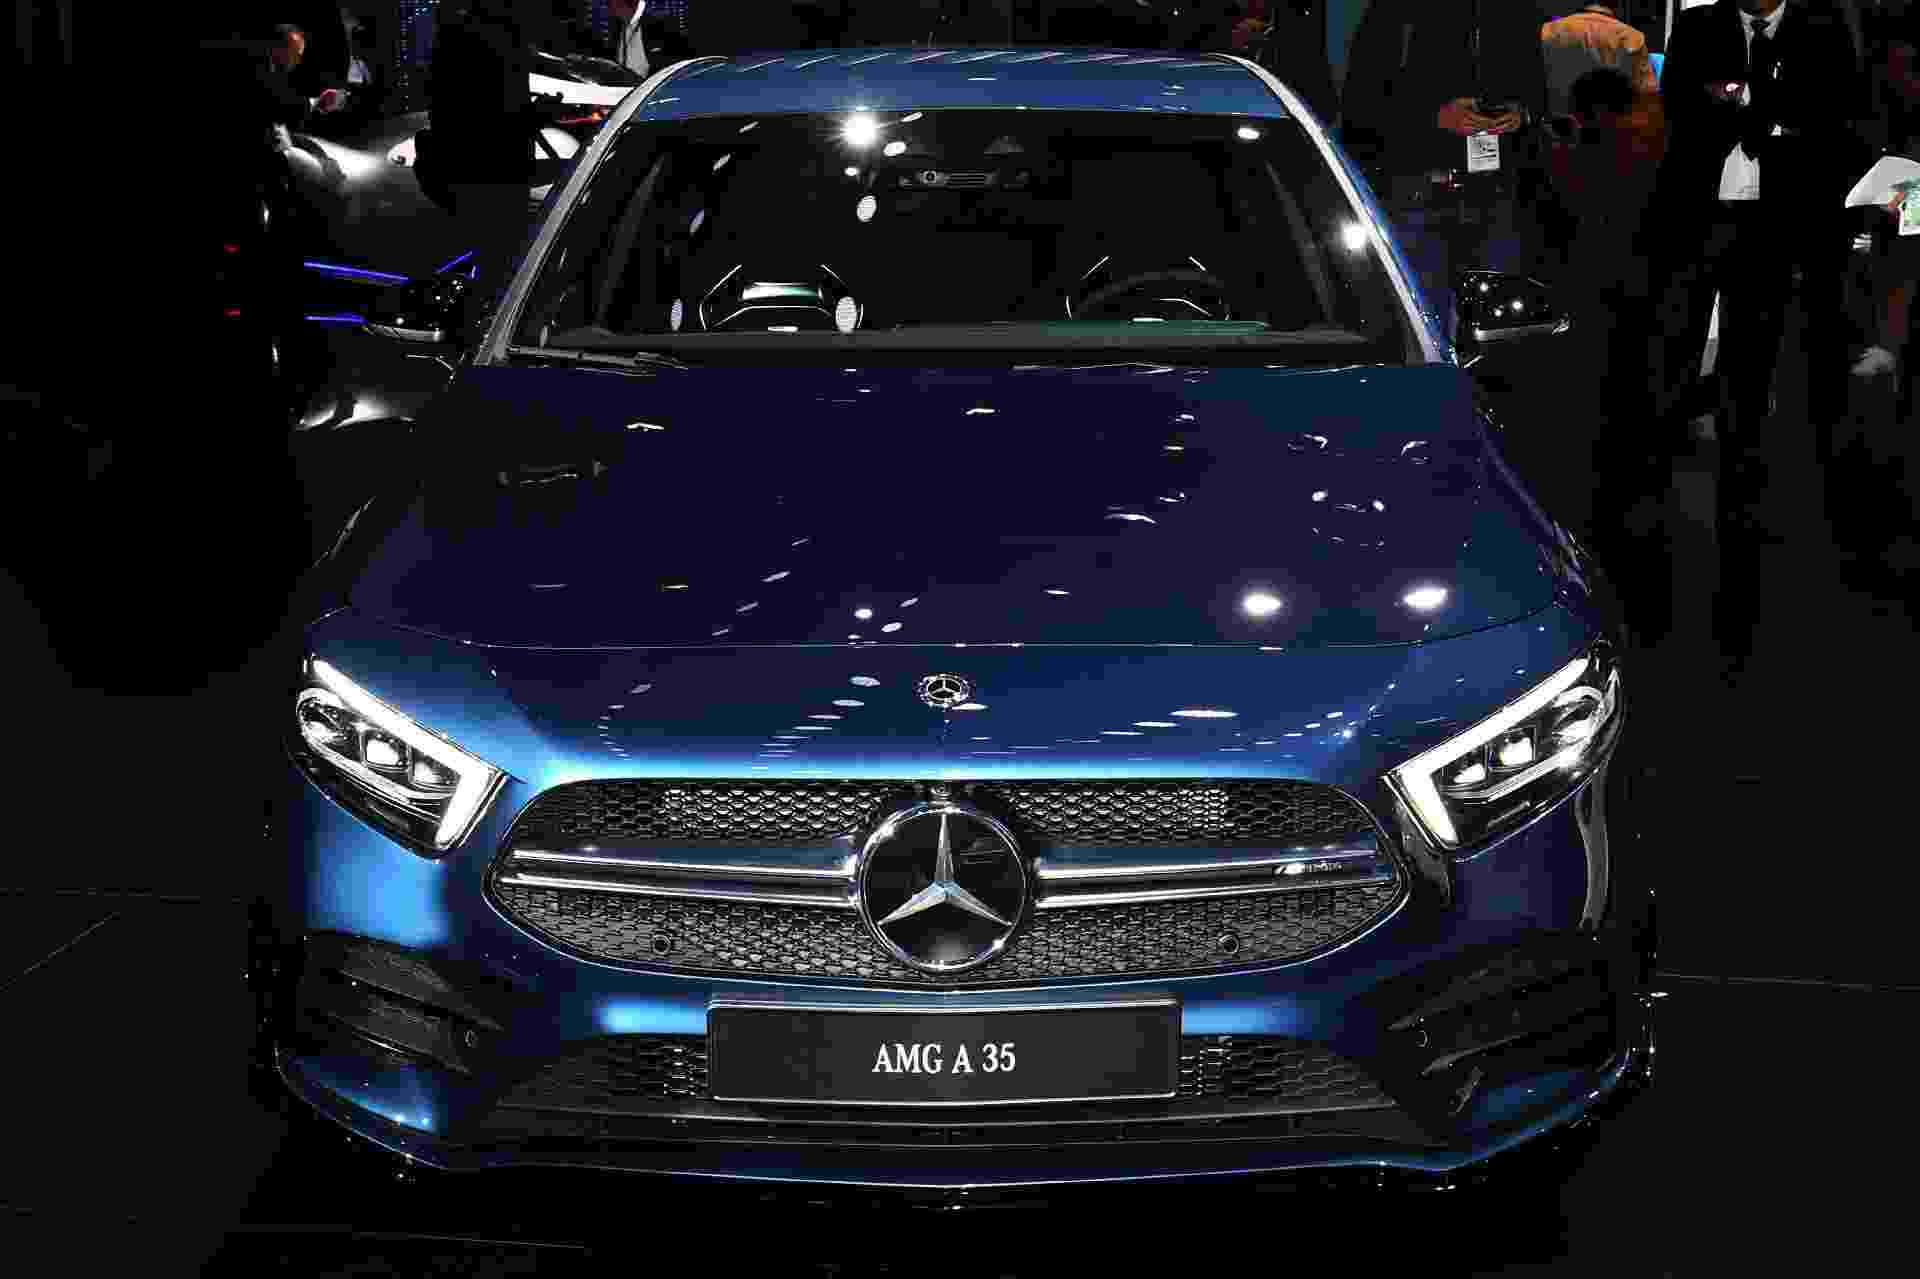 Mercedes-Benz A 35 AMG - Newspress